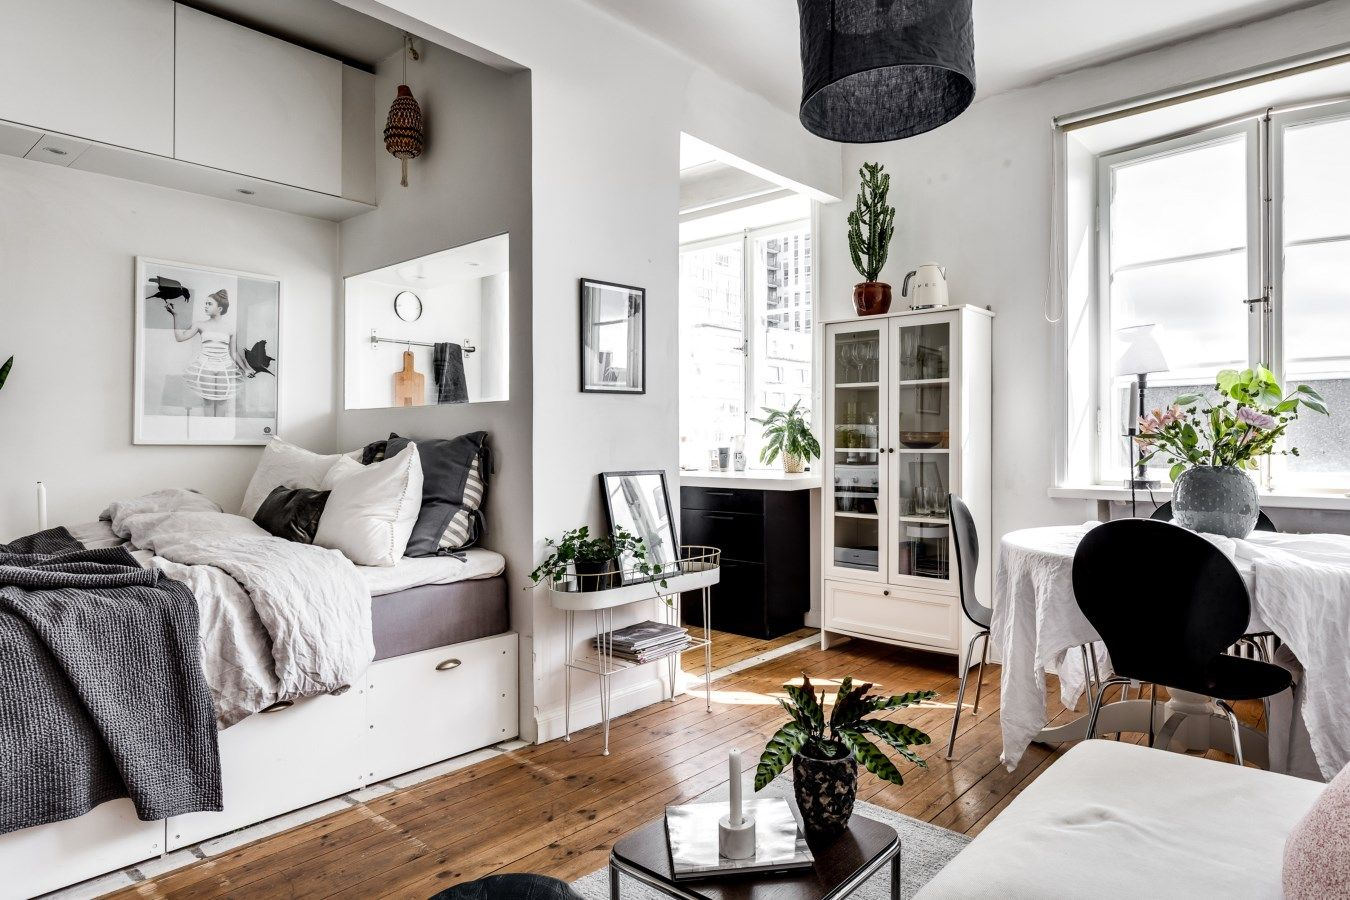 24 Studio Apartment Ideas and Design that Boost Your